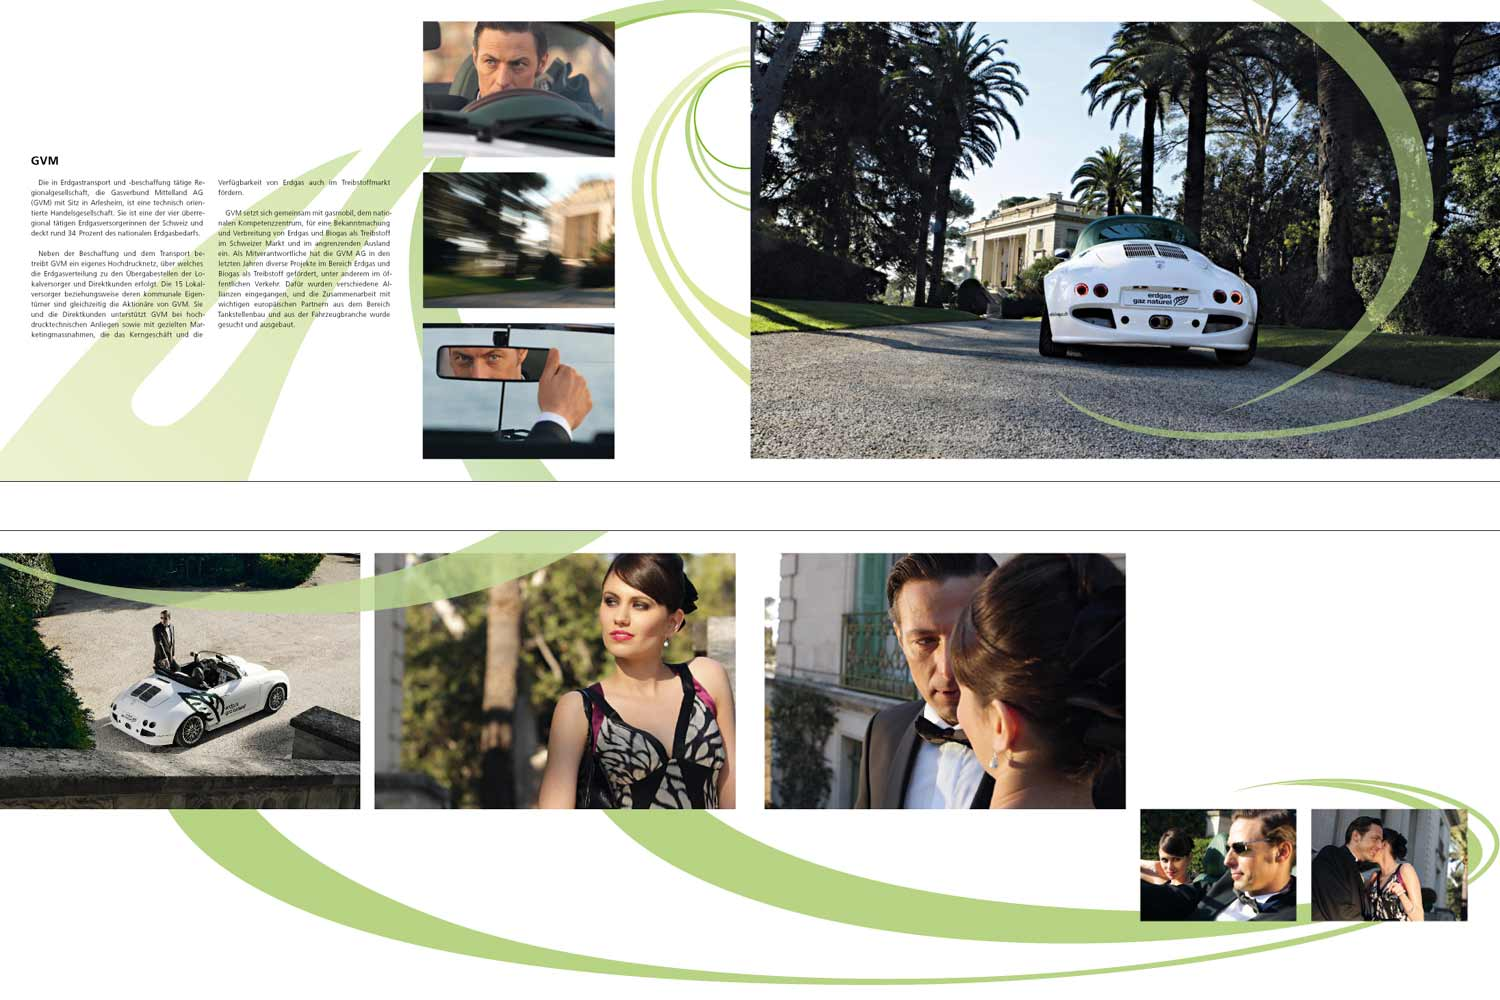 portfolio-graphic-design-brochure-gvm-08-3-3.jpg